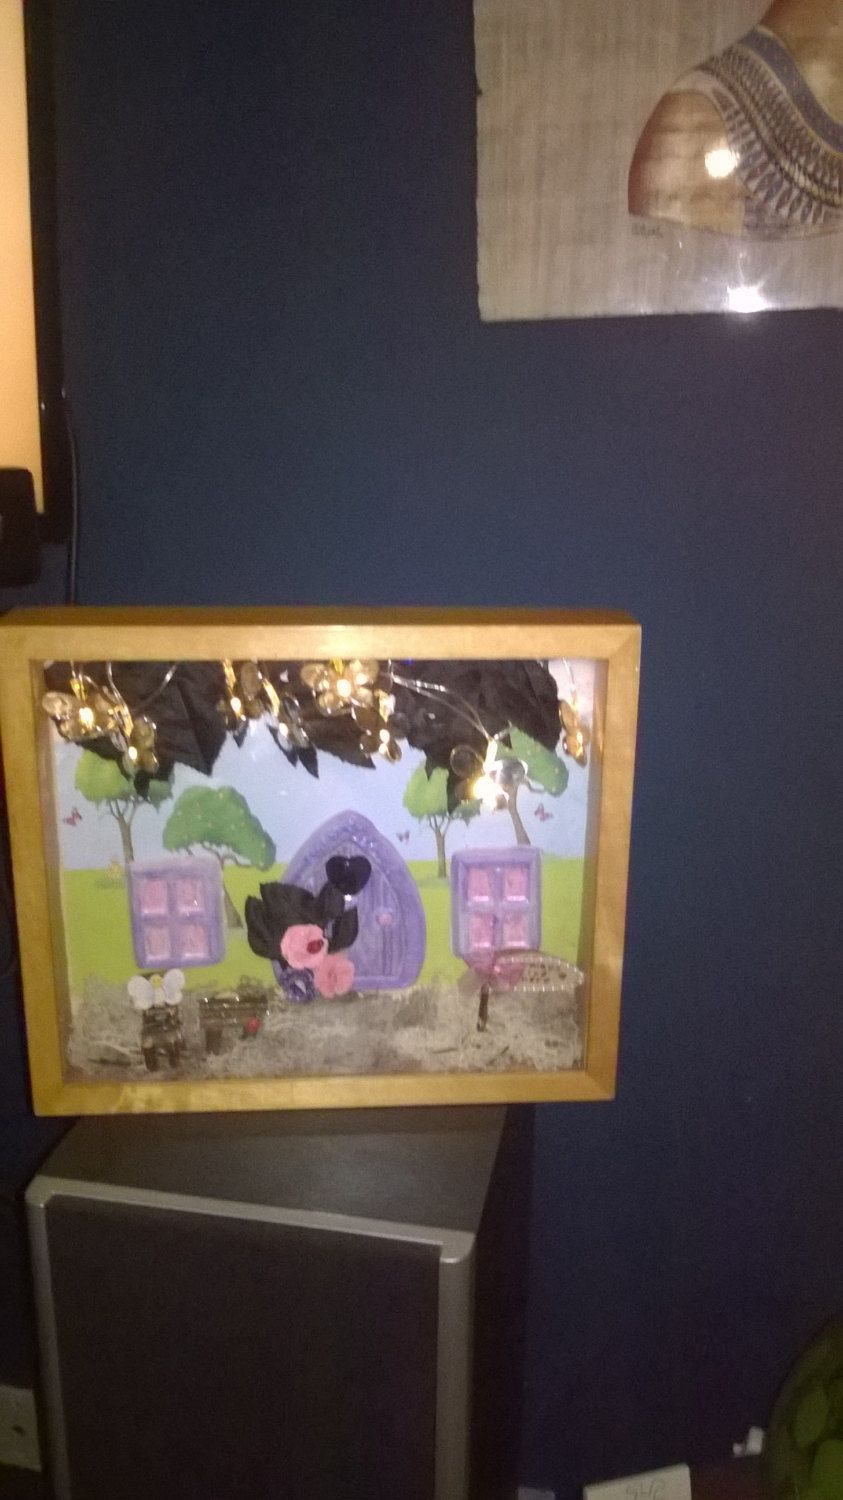 fairy garden in a frame by shineycrafts63 on Etsy